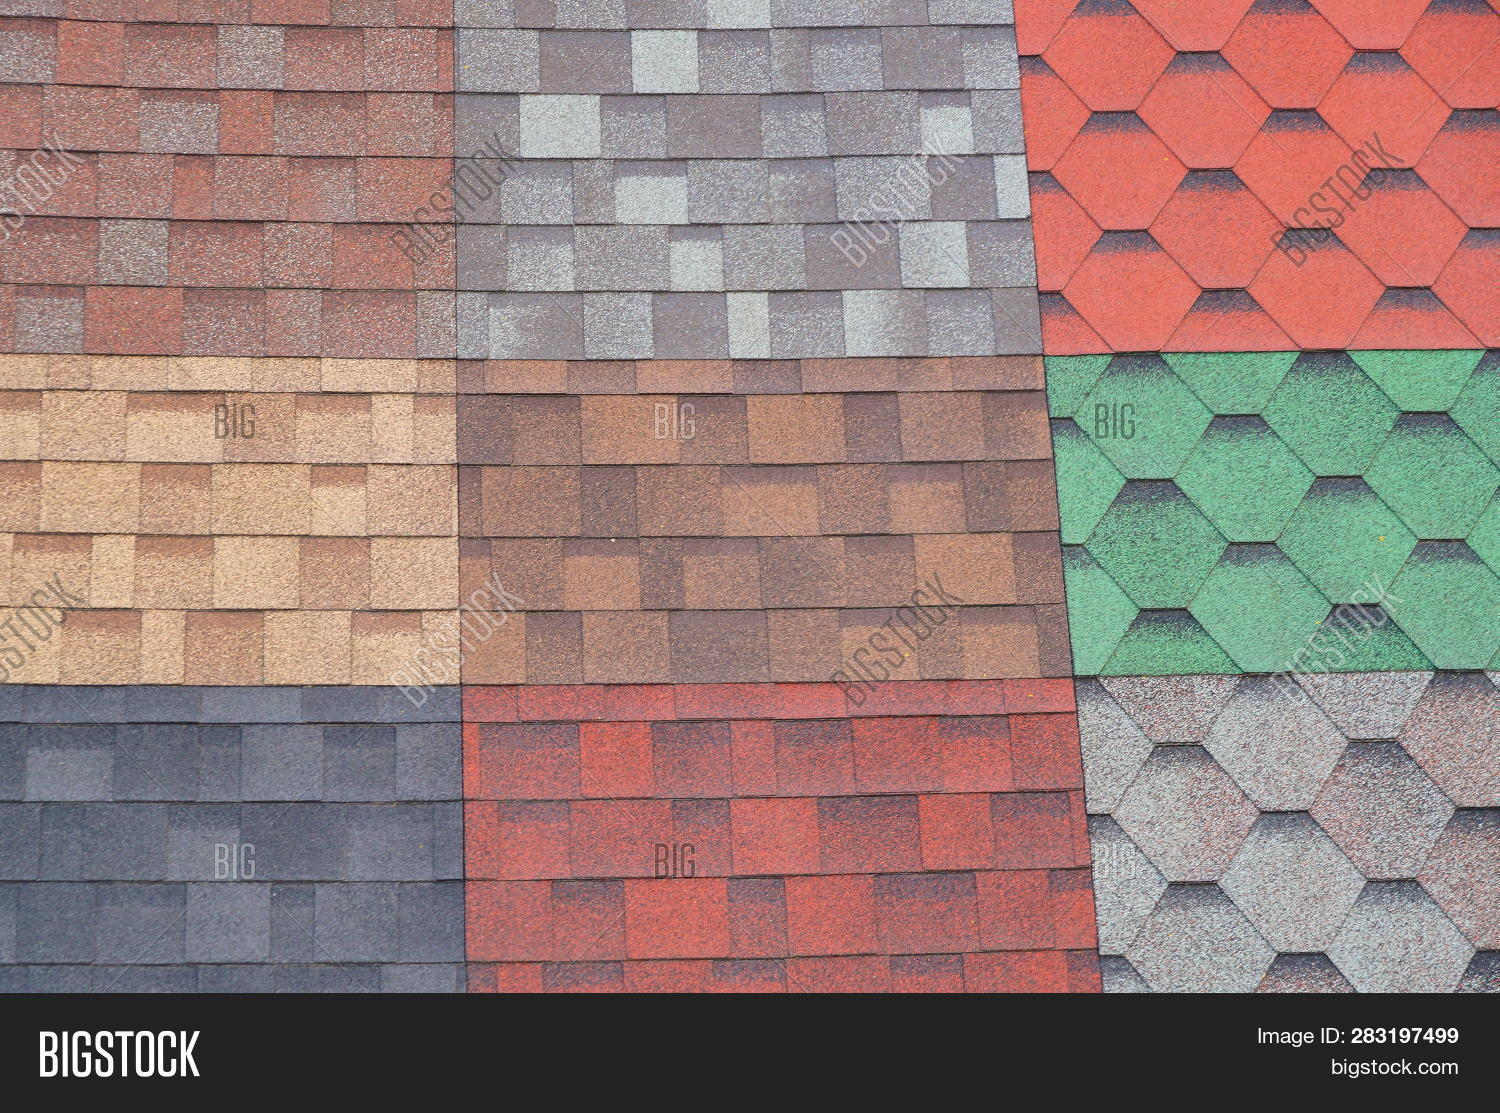 soft roof roof tiles image photo